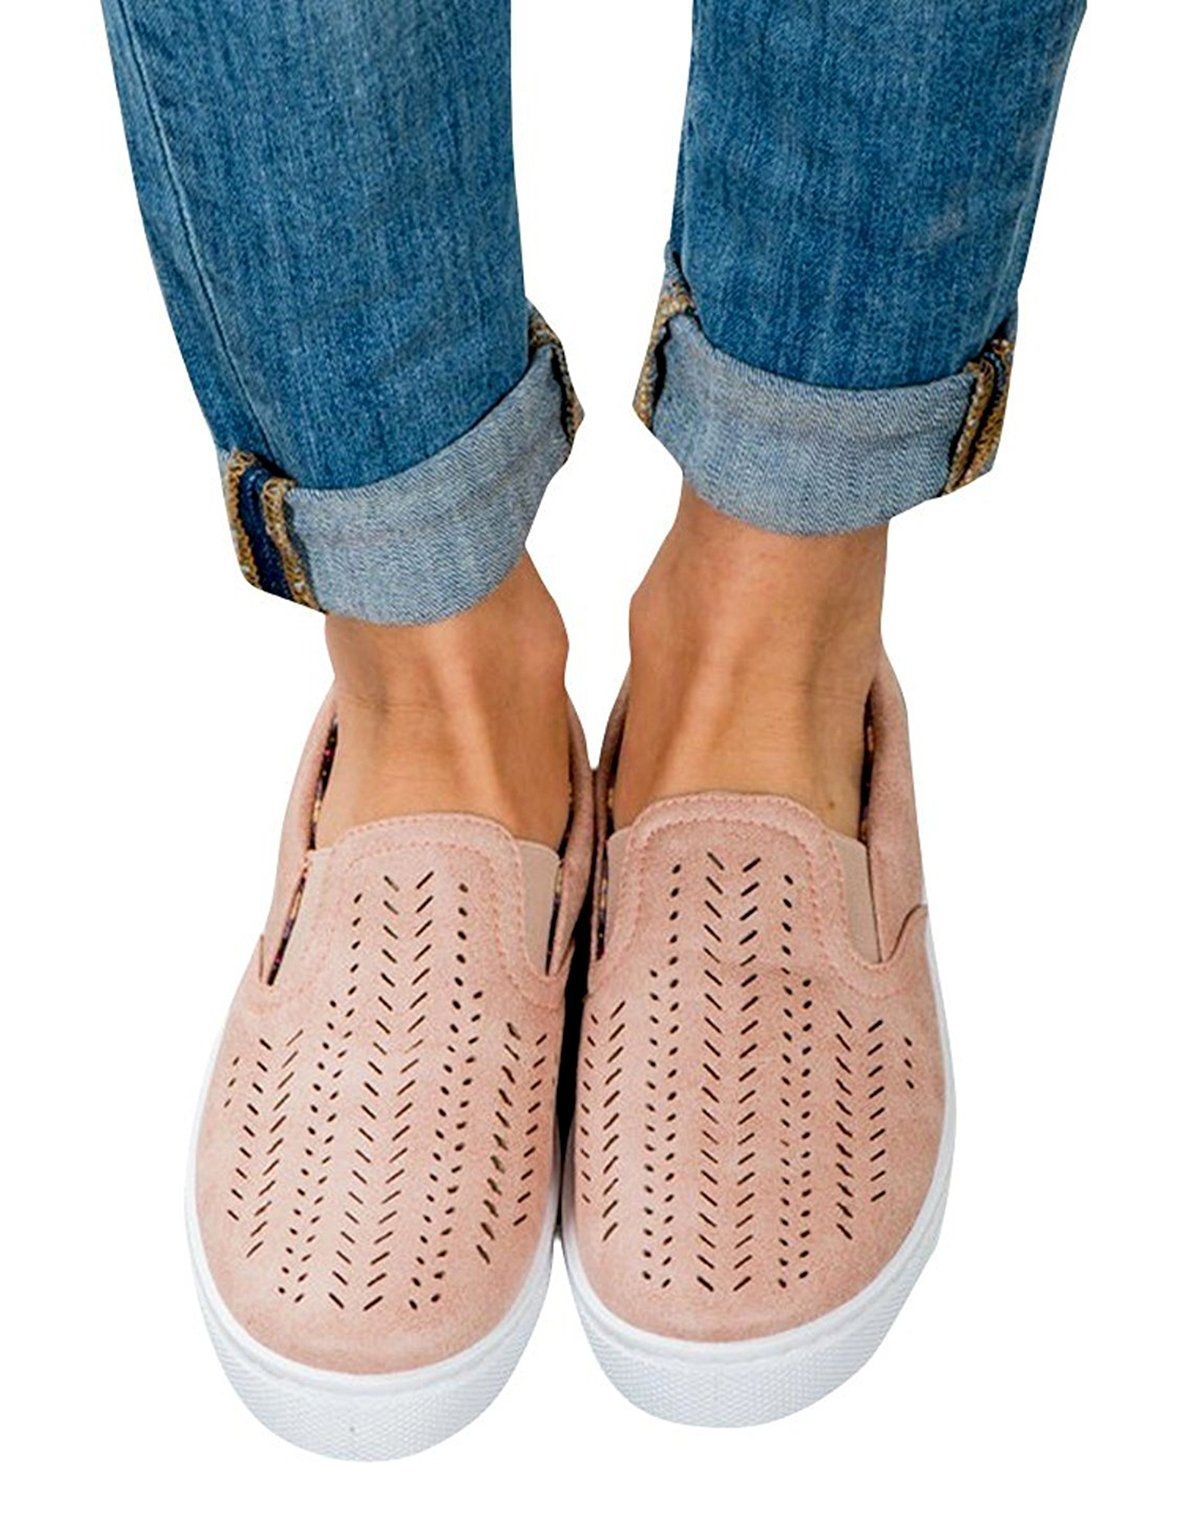 Paris Hill Women's Casual Hollow Loafer Canvas Flats Shoes Lpink US8